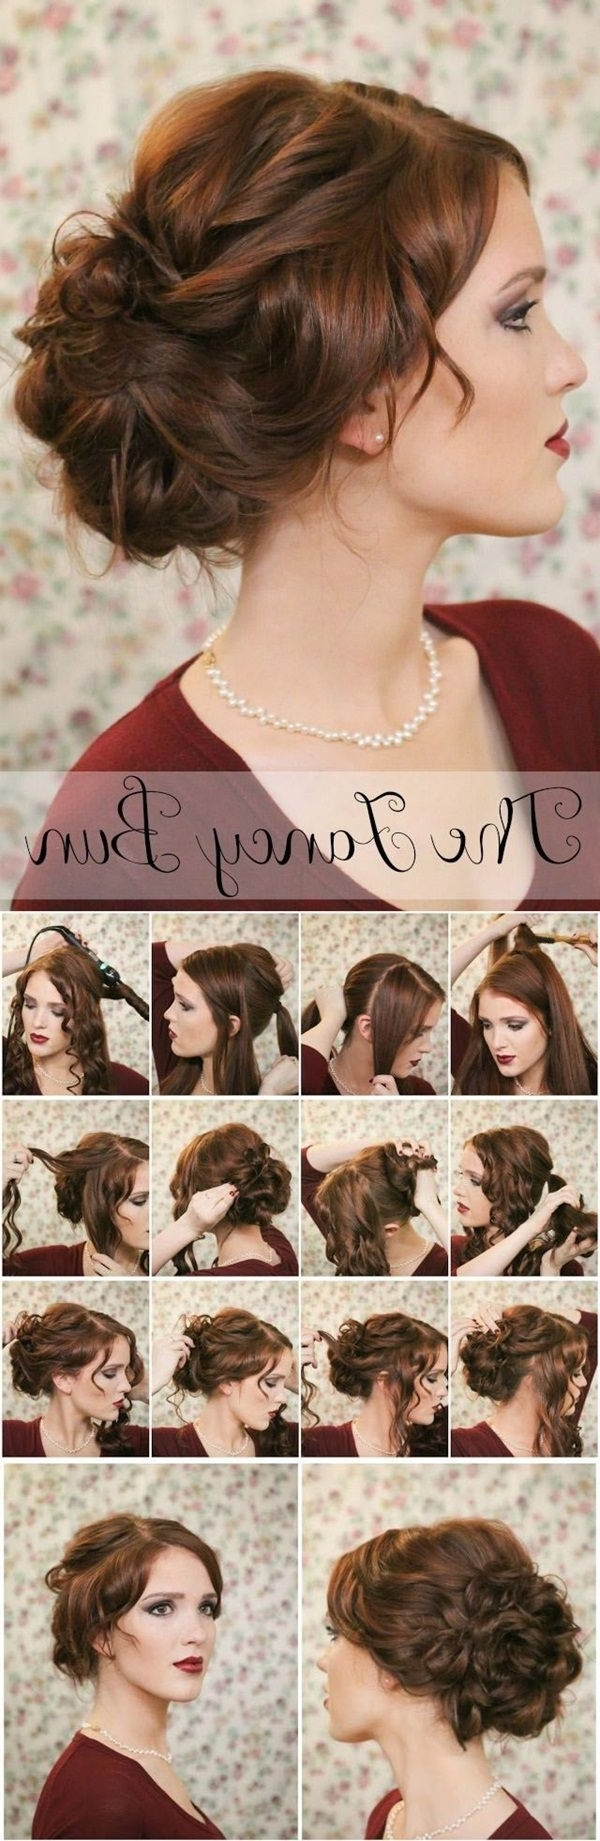 Latest Diy Simple Wedding Hairstyles For Long Hair With 20 Diy Wedding Hairstyles With Tutorials To Try On Your Own (View 9 of 15)